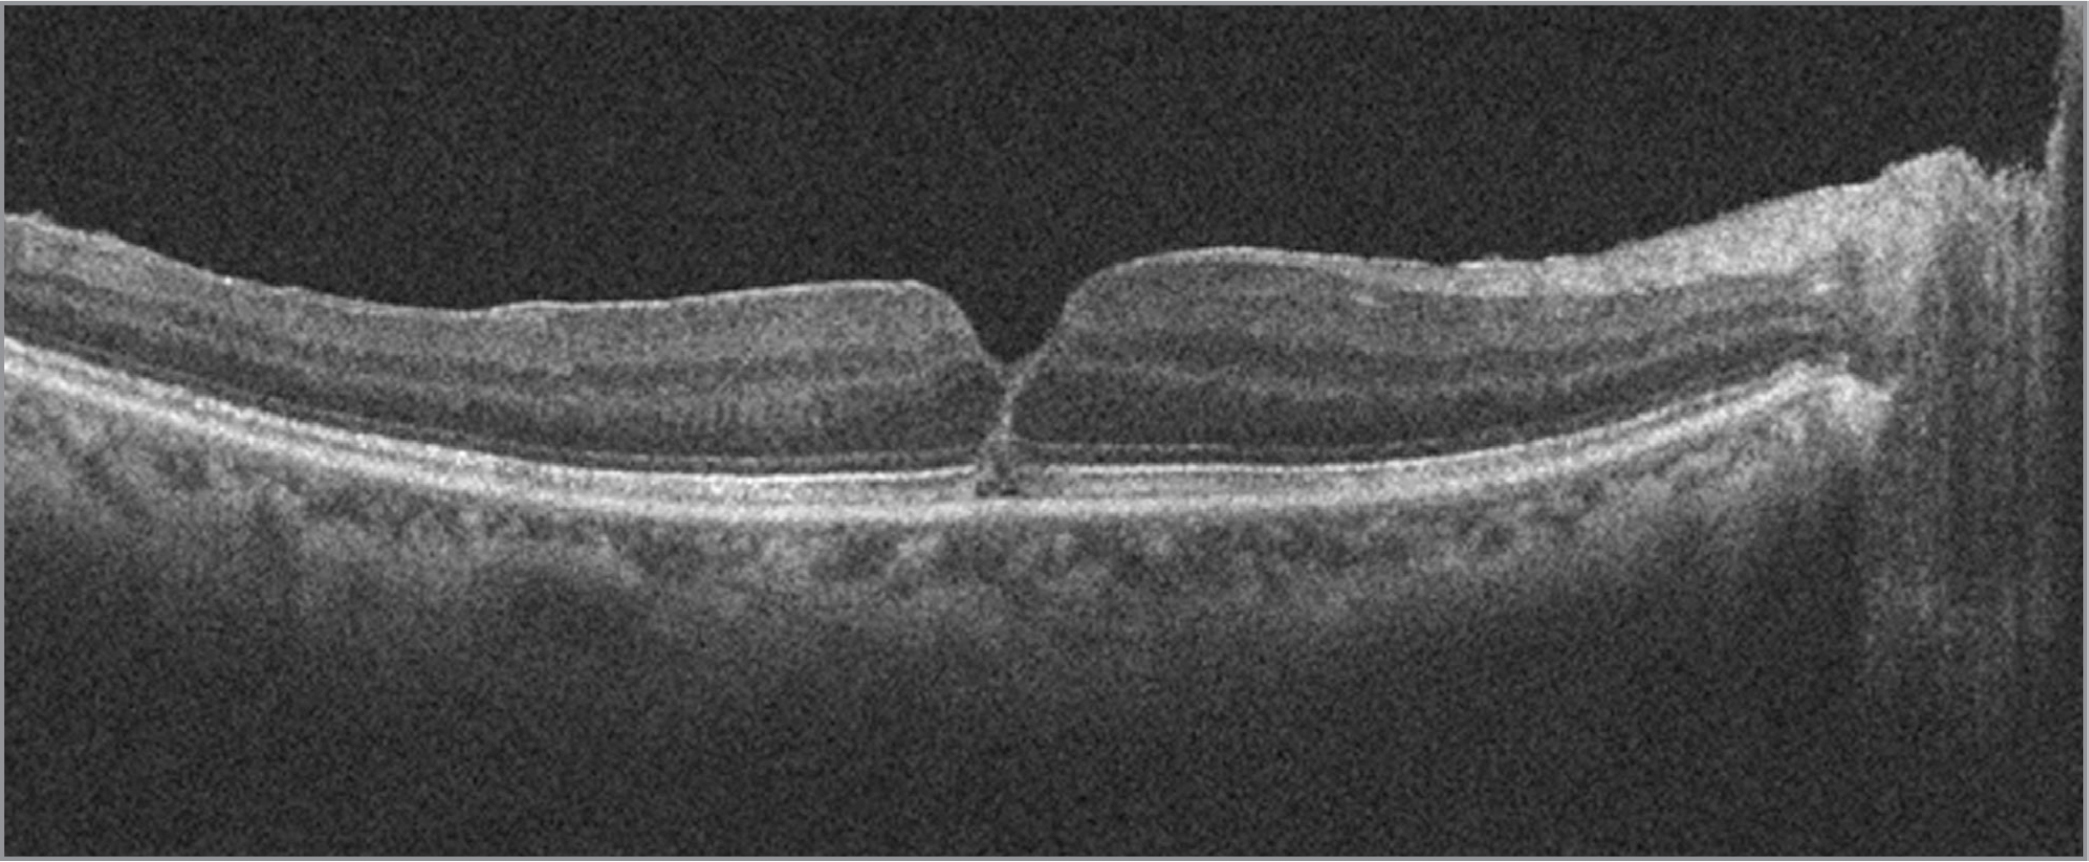 Spectral-domain optical coherence tomography from 2 weeks after surgery demonstrating closure of macular hole.